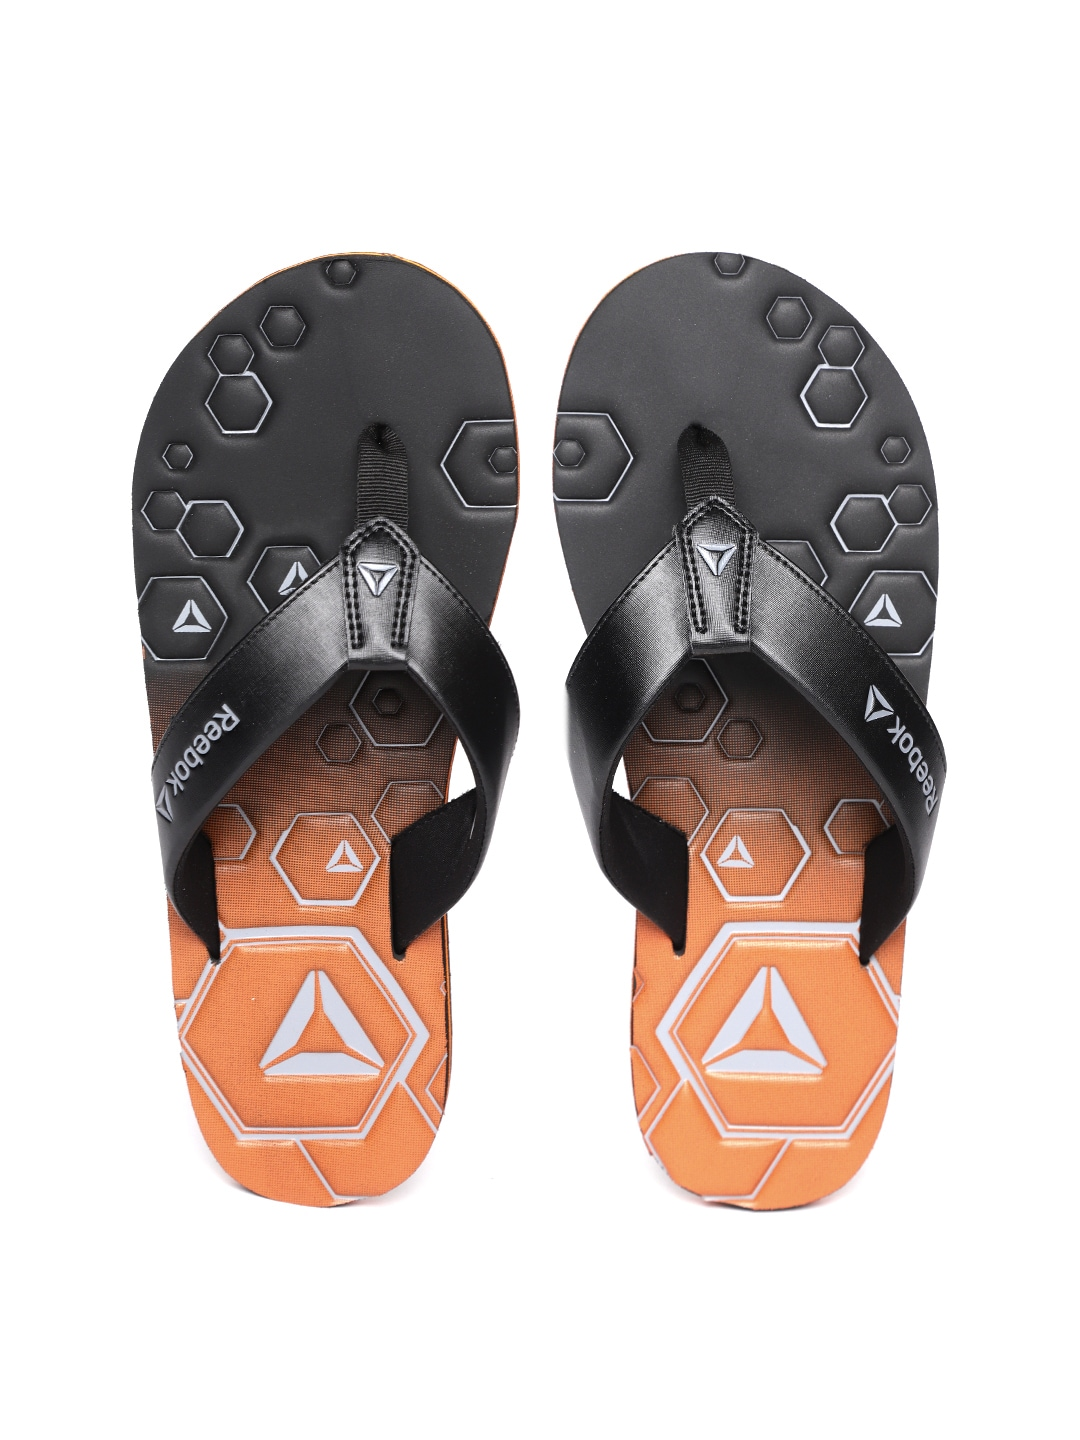 3ca97066fcfb Reebok Coaster Flip Flops Sandals - Buy Reebok Coaster Flip Flops Sandals  online in India